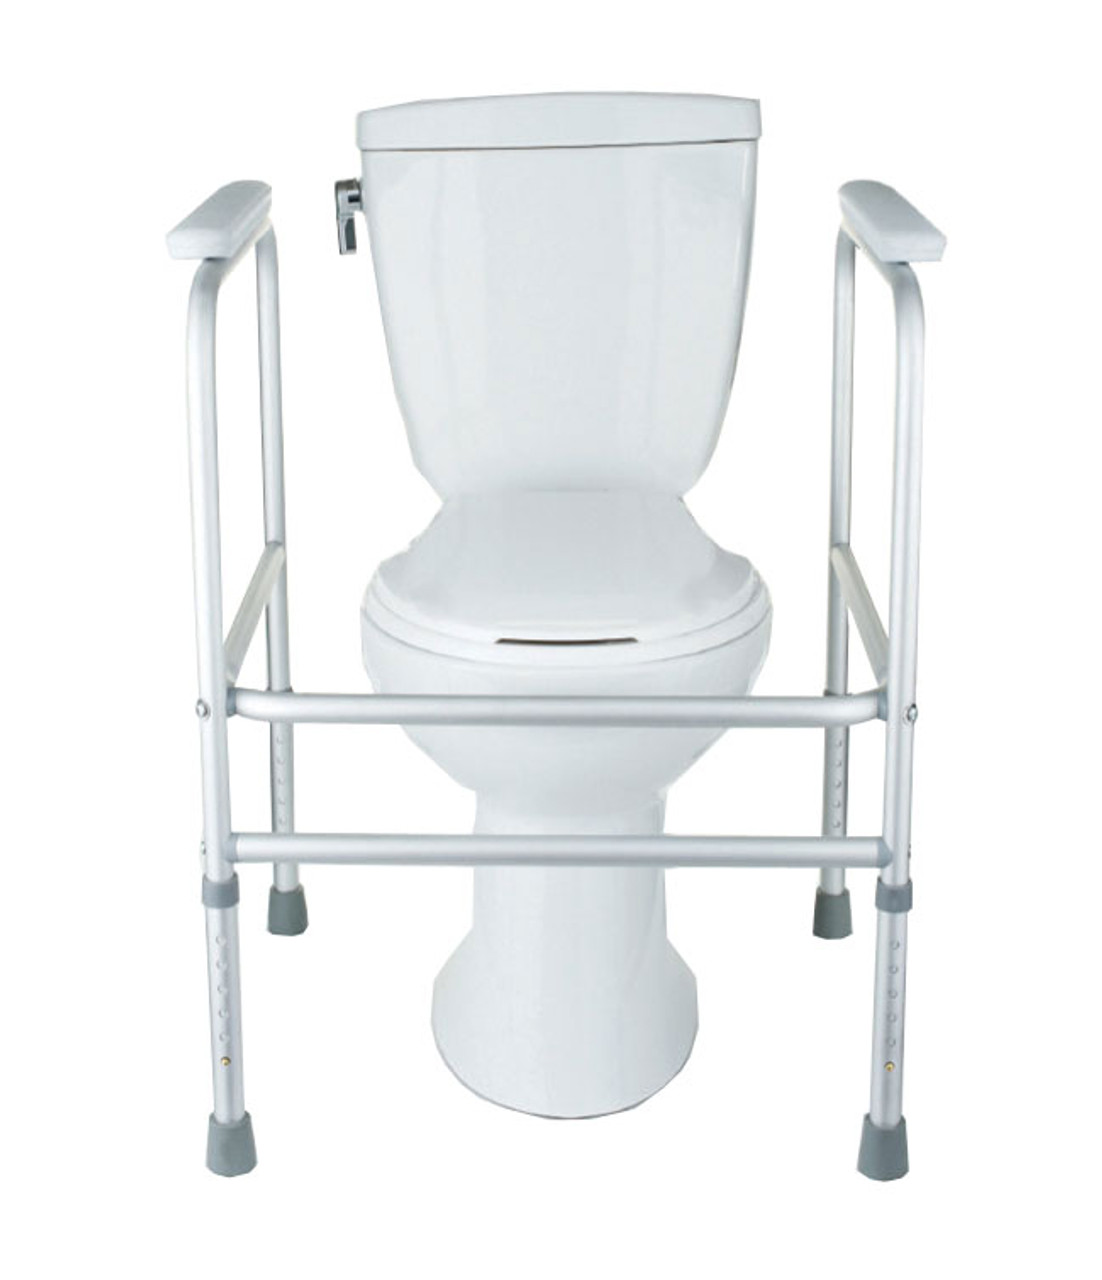 Marvelous Aluminum Toilet Safety Frame Andrewgaddart Wooden Chair Designs For Living Room Andrewgaddartcom